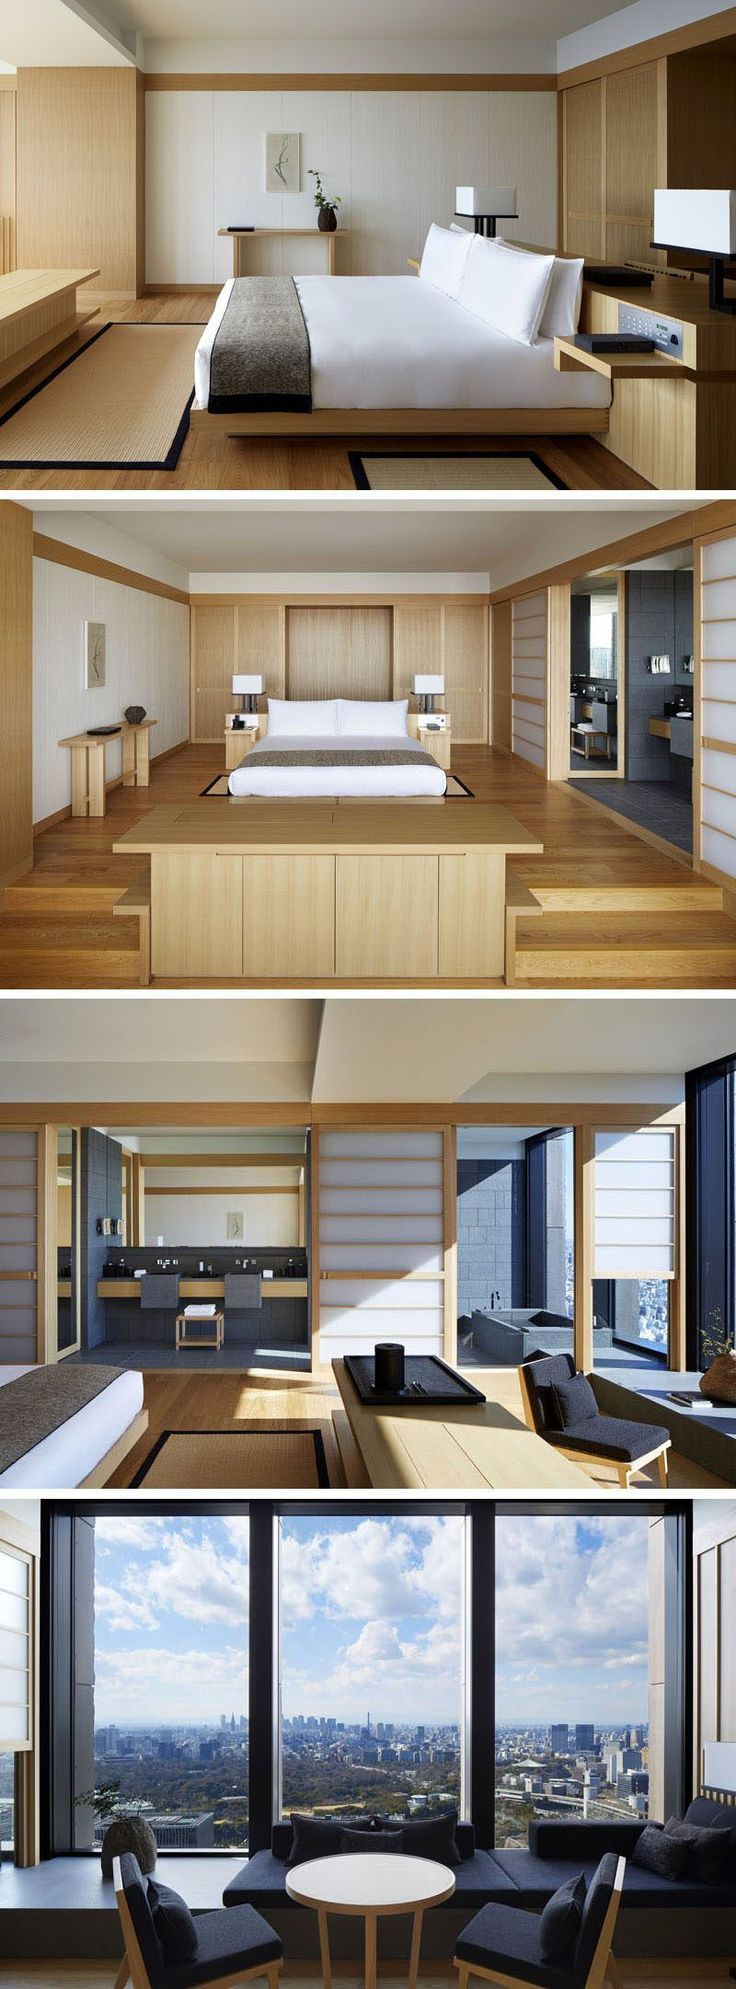 Japanese Houses Interior best 25+ japanese modern interior ideas on pinterest | japanese